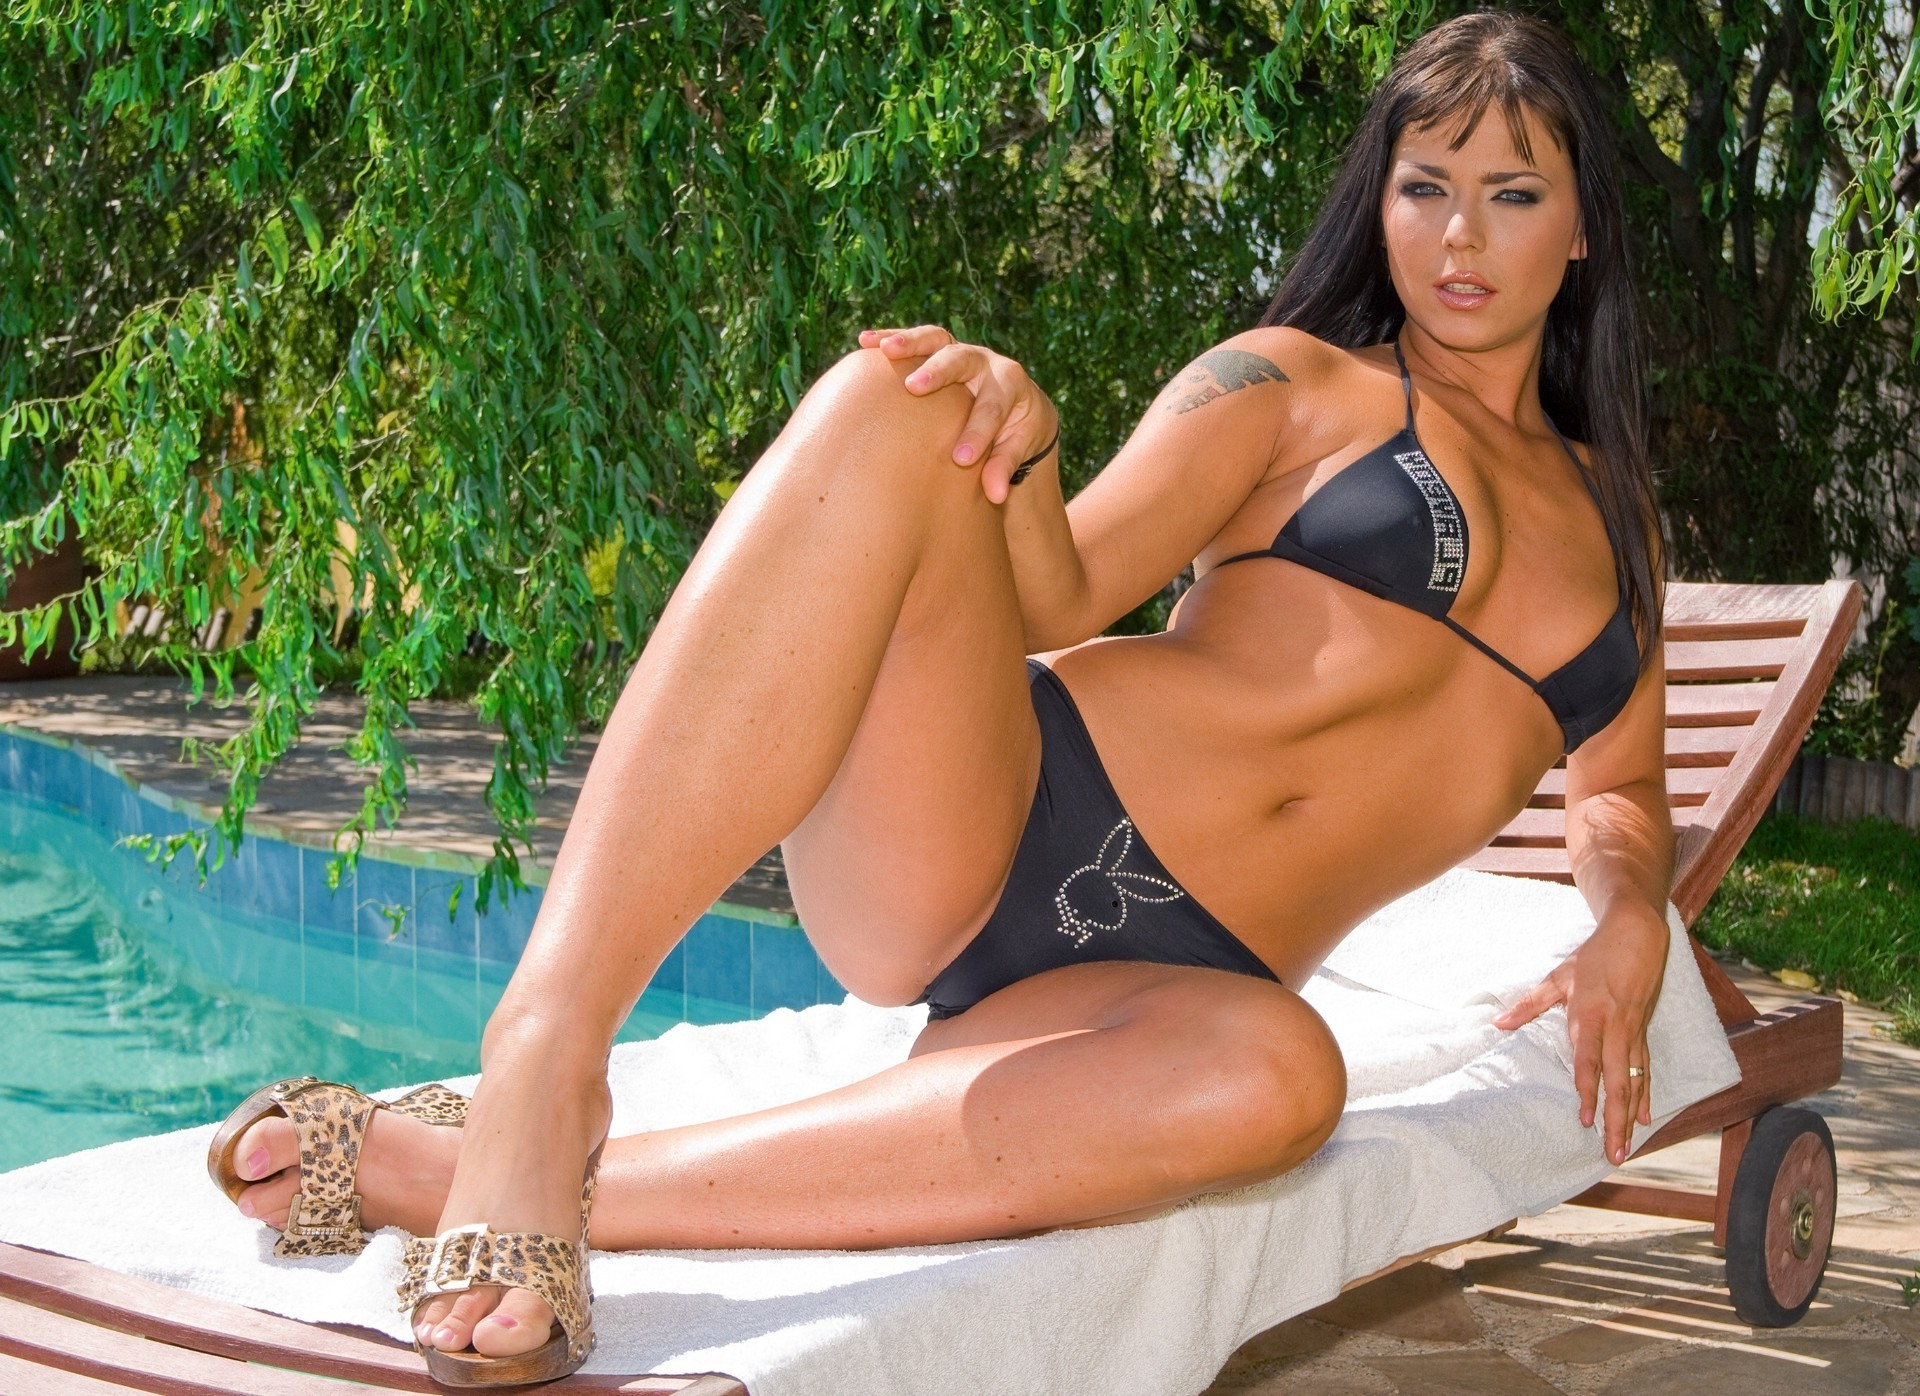 Model Simony Diamond resting on a lounger by the pool